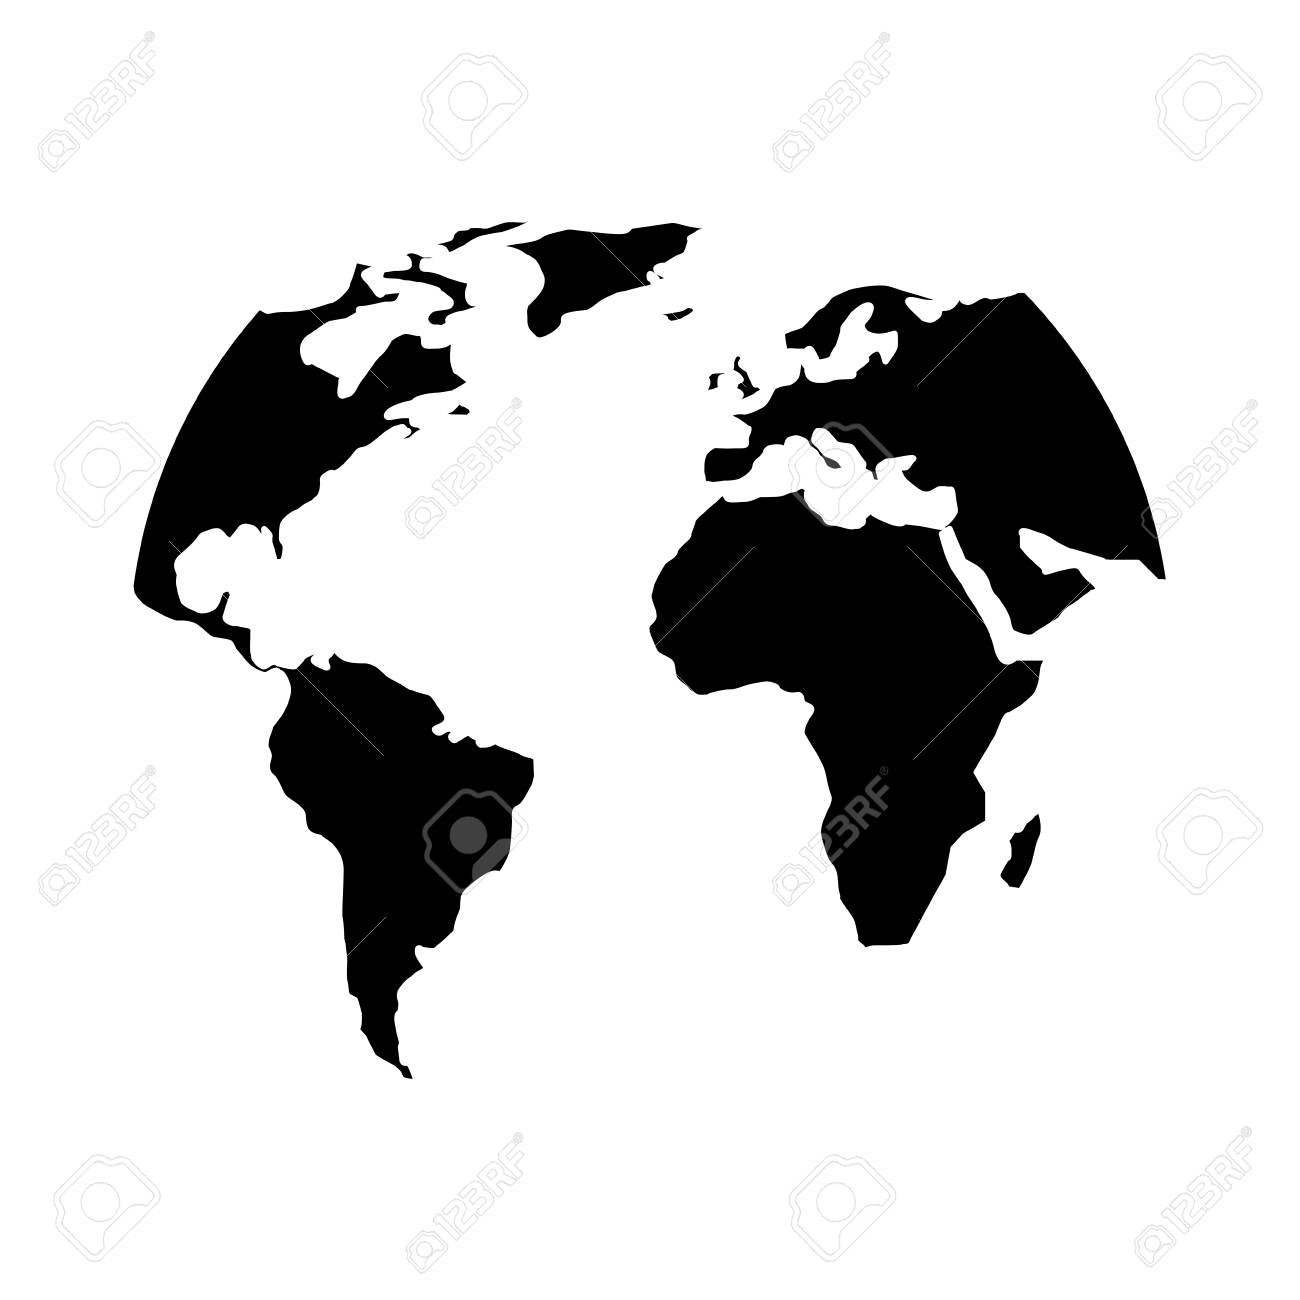 silhouette world map location planet vector illustration black..